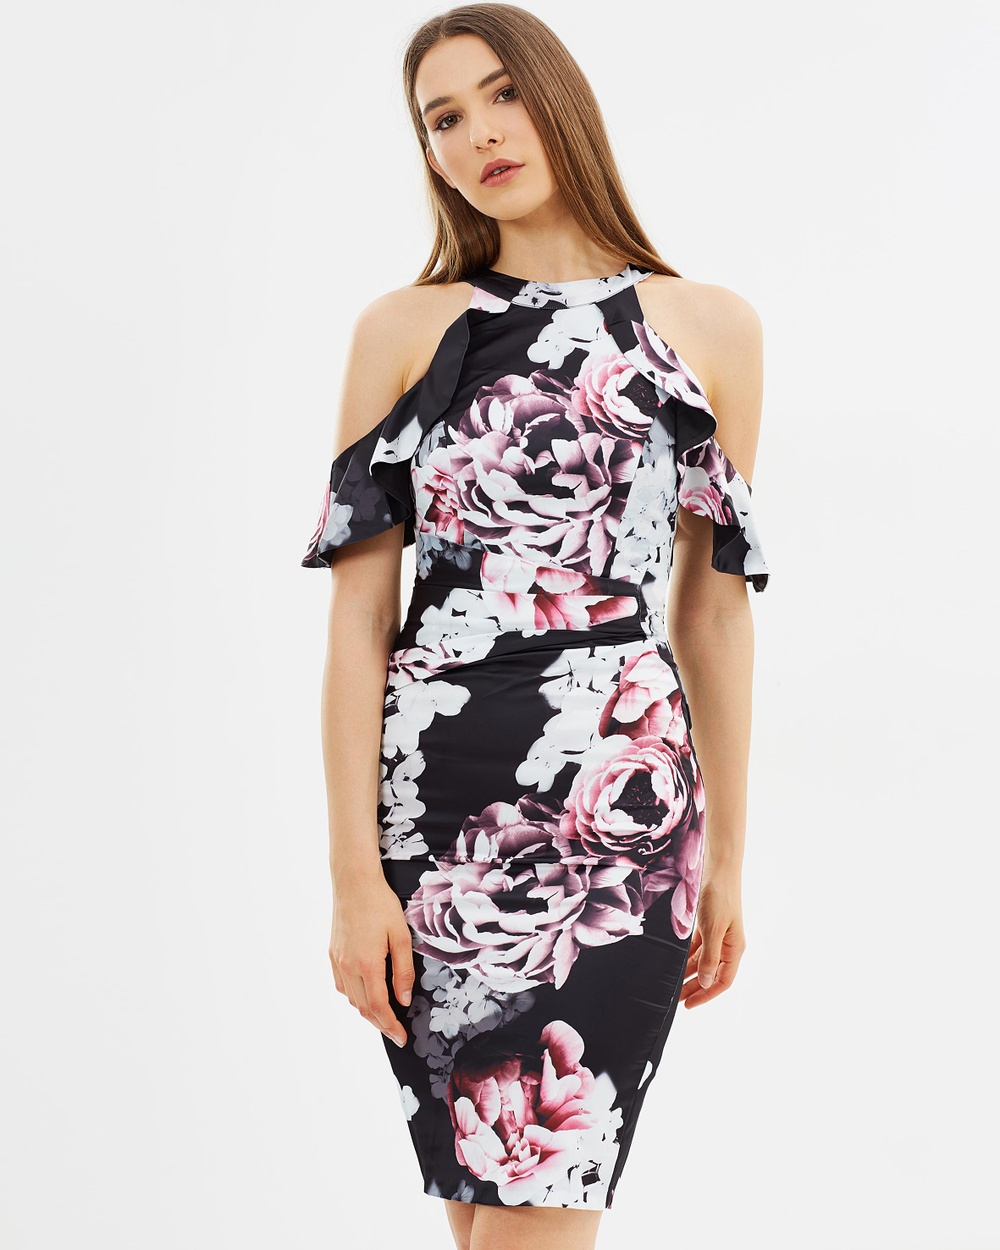 Lipsy Ella Print Cold Shoulder Satin Shift Dress Dresses Print Ella Print Cold Shoulder Satin Shift Dress